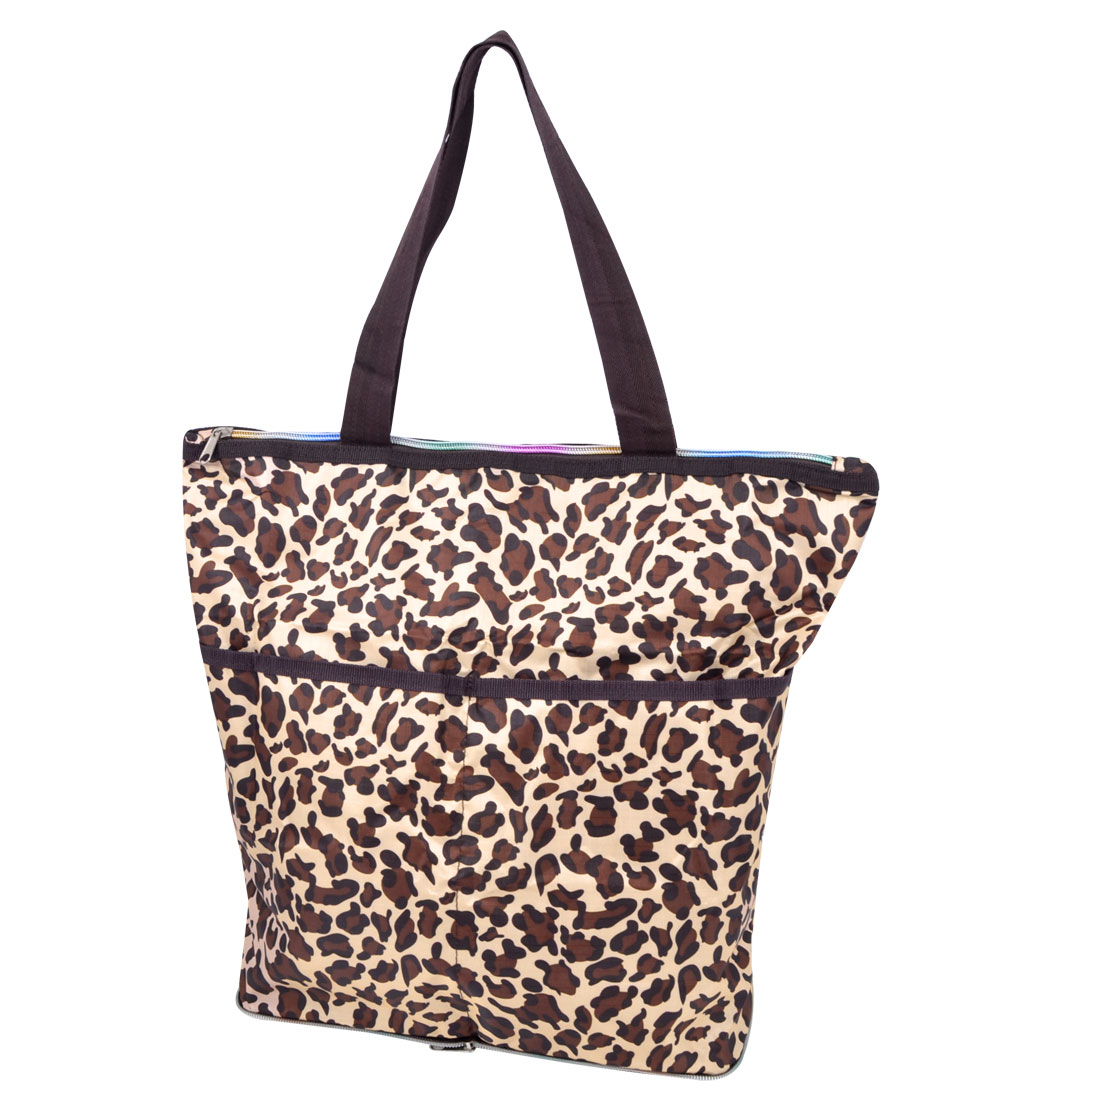 Traveling Shopping Foldable Beige Brown Cheetah Pattern Zipper Closure Clothes Storage Bag Holder Pouch 40x35x15cm